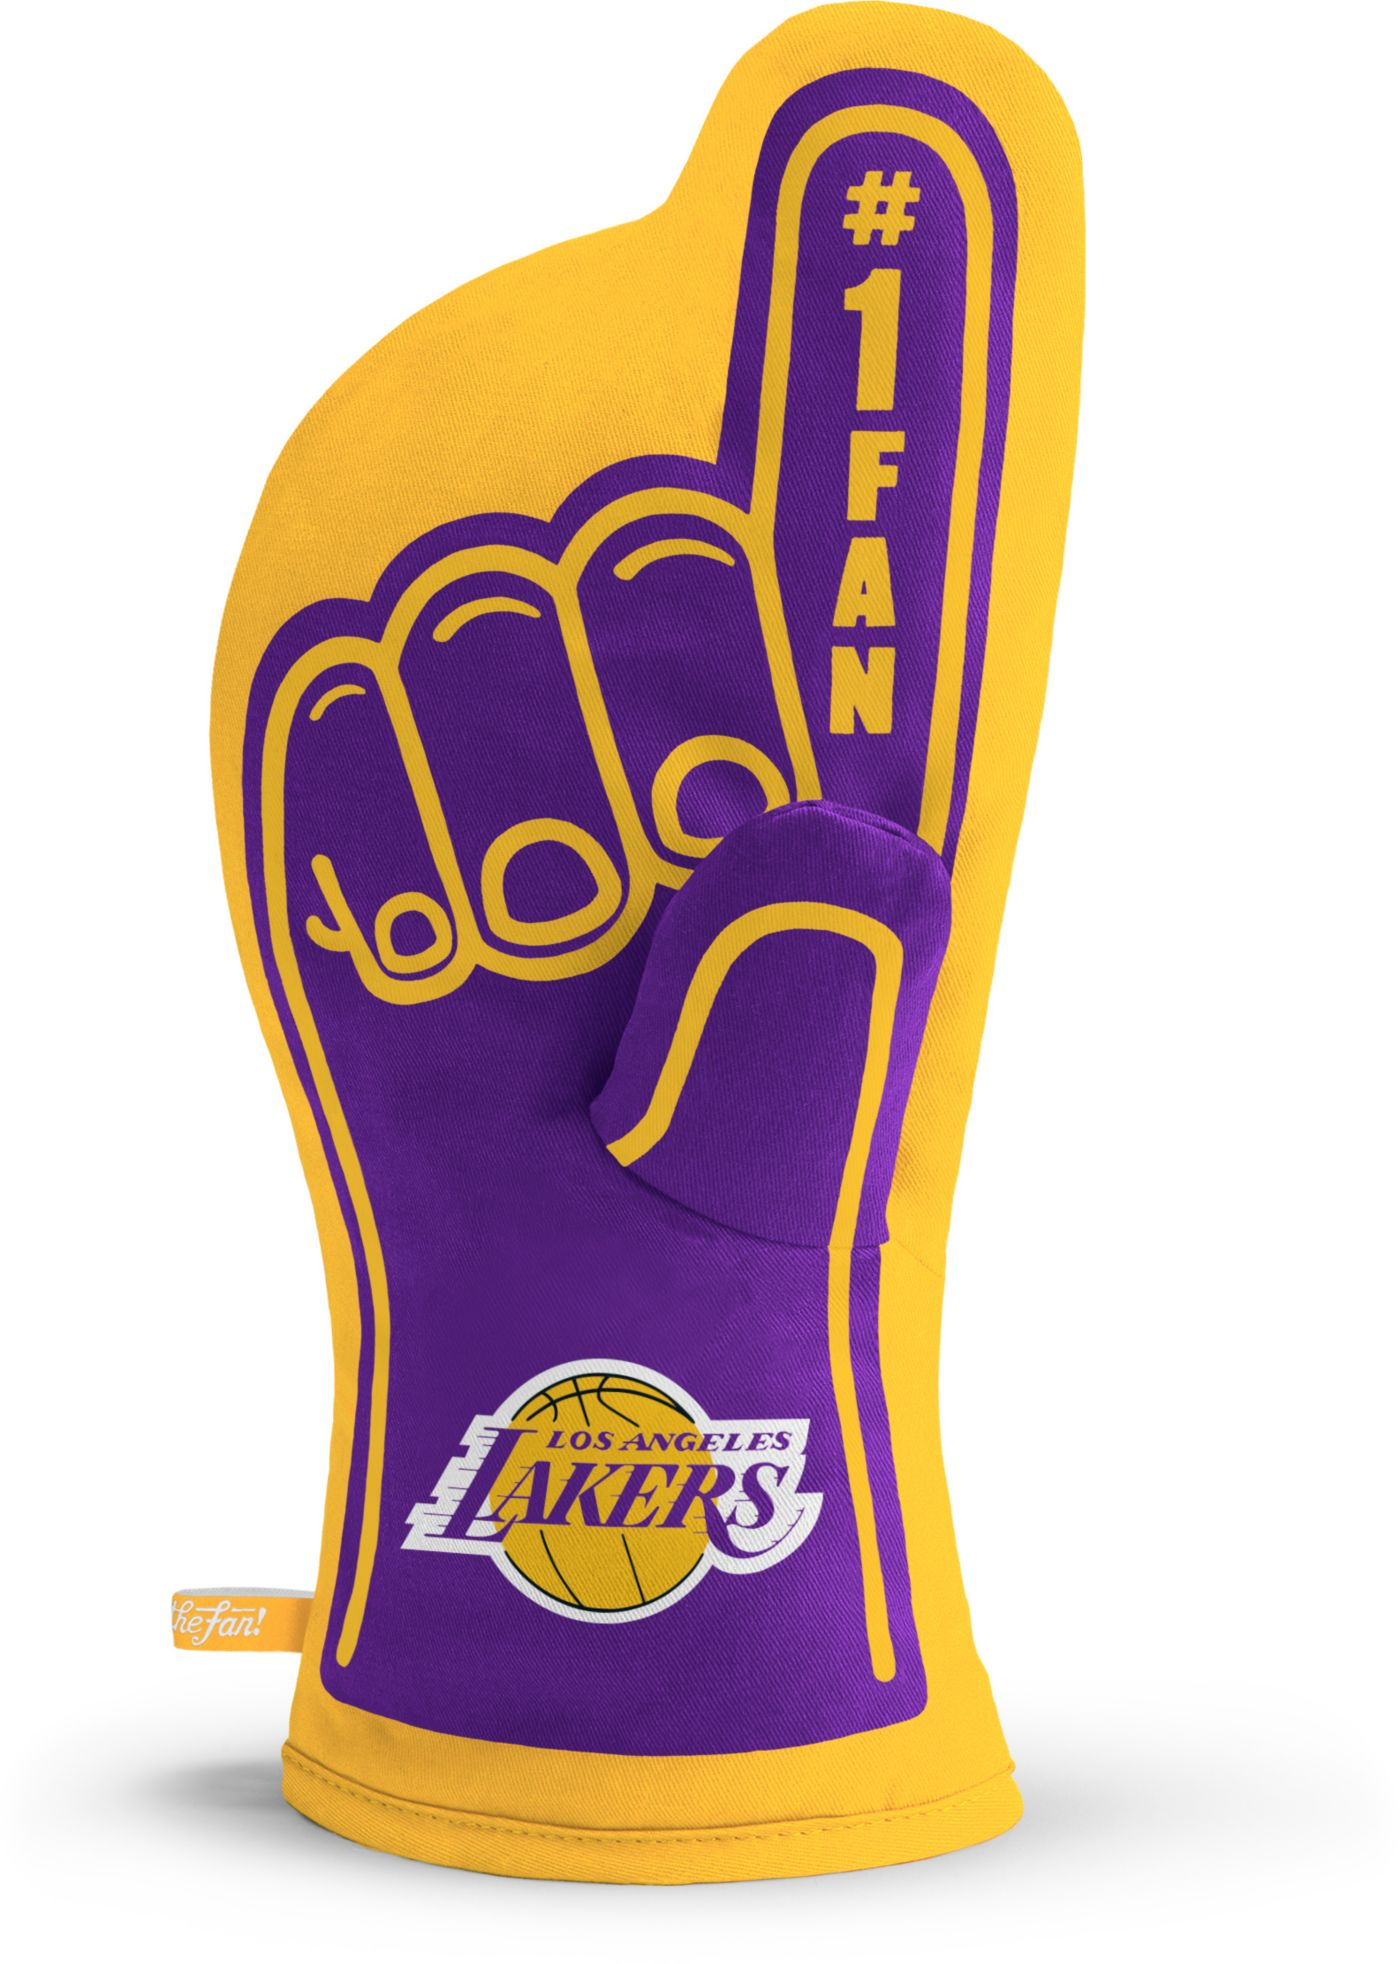 You The Fan Los Angeles Lakers #1 Oven Mitt